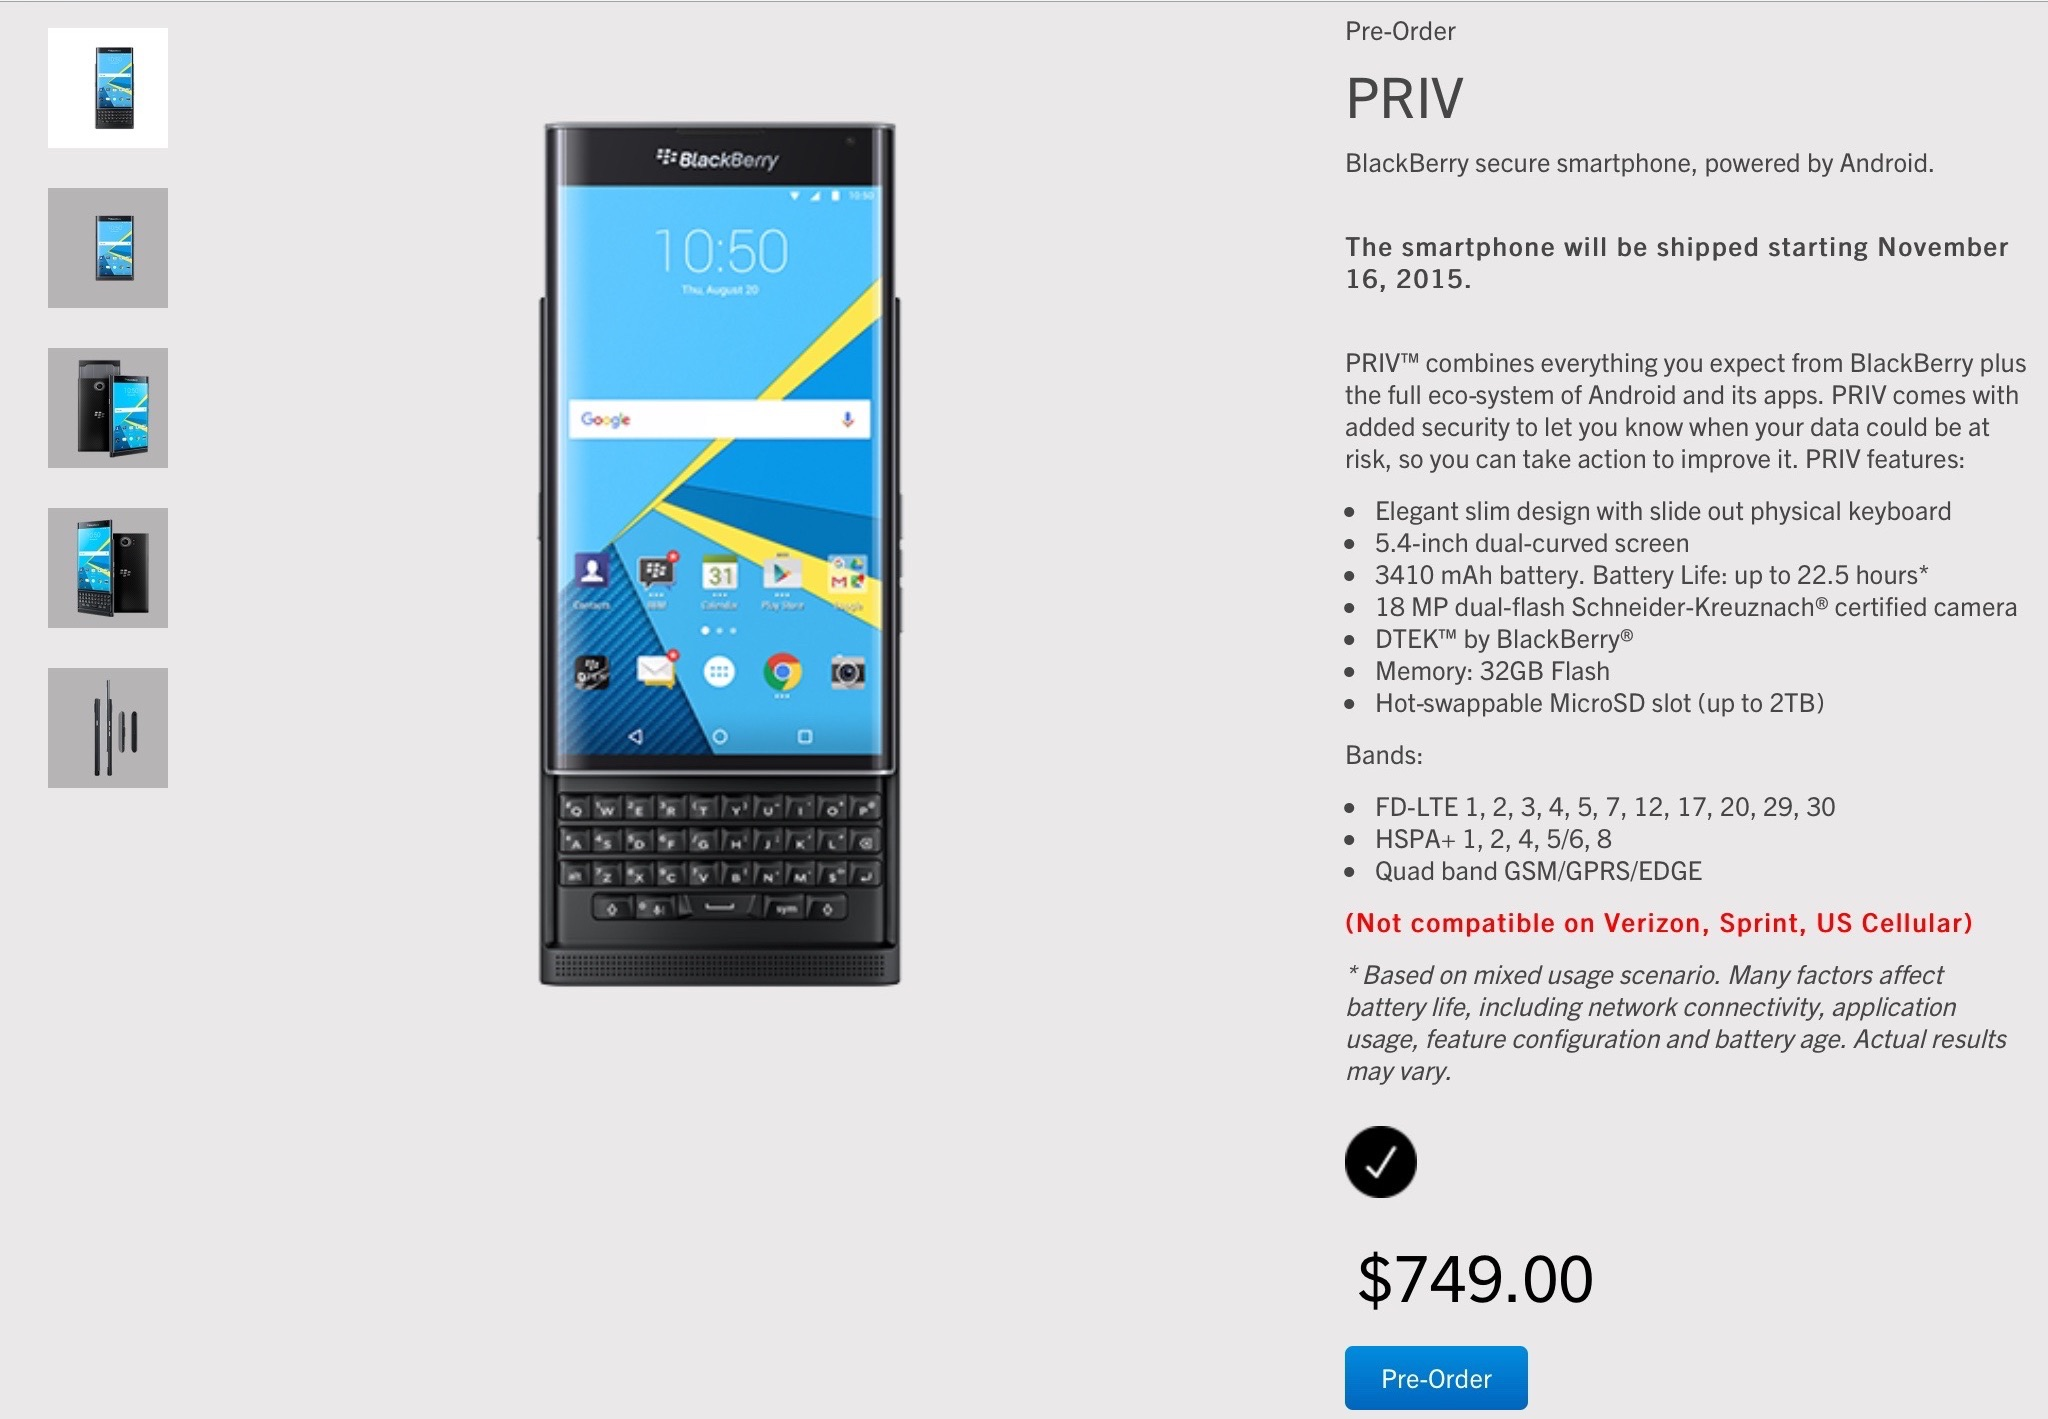 BlackBerry's pre-order page for its first Android-powered smartphone, the BlackBerry Priv